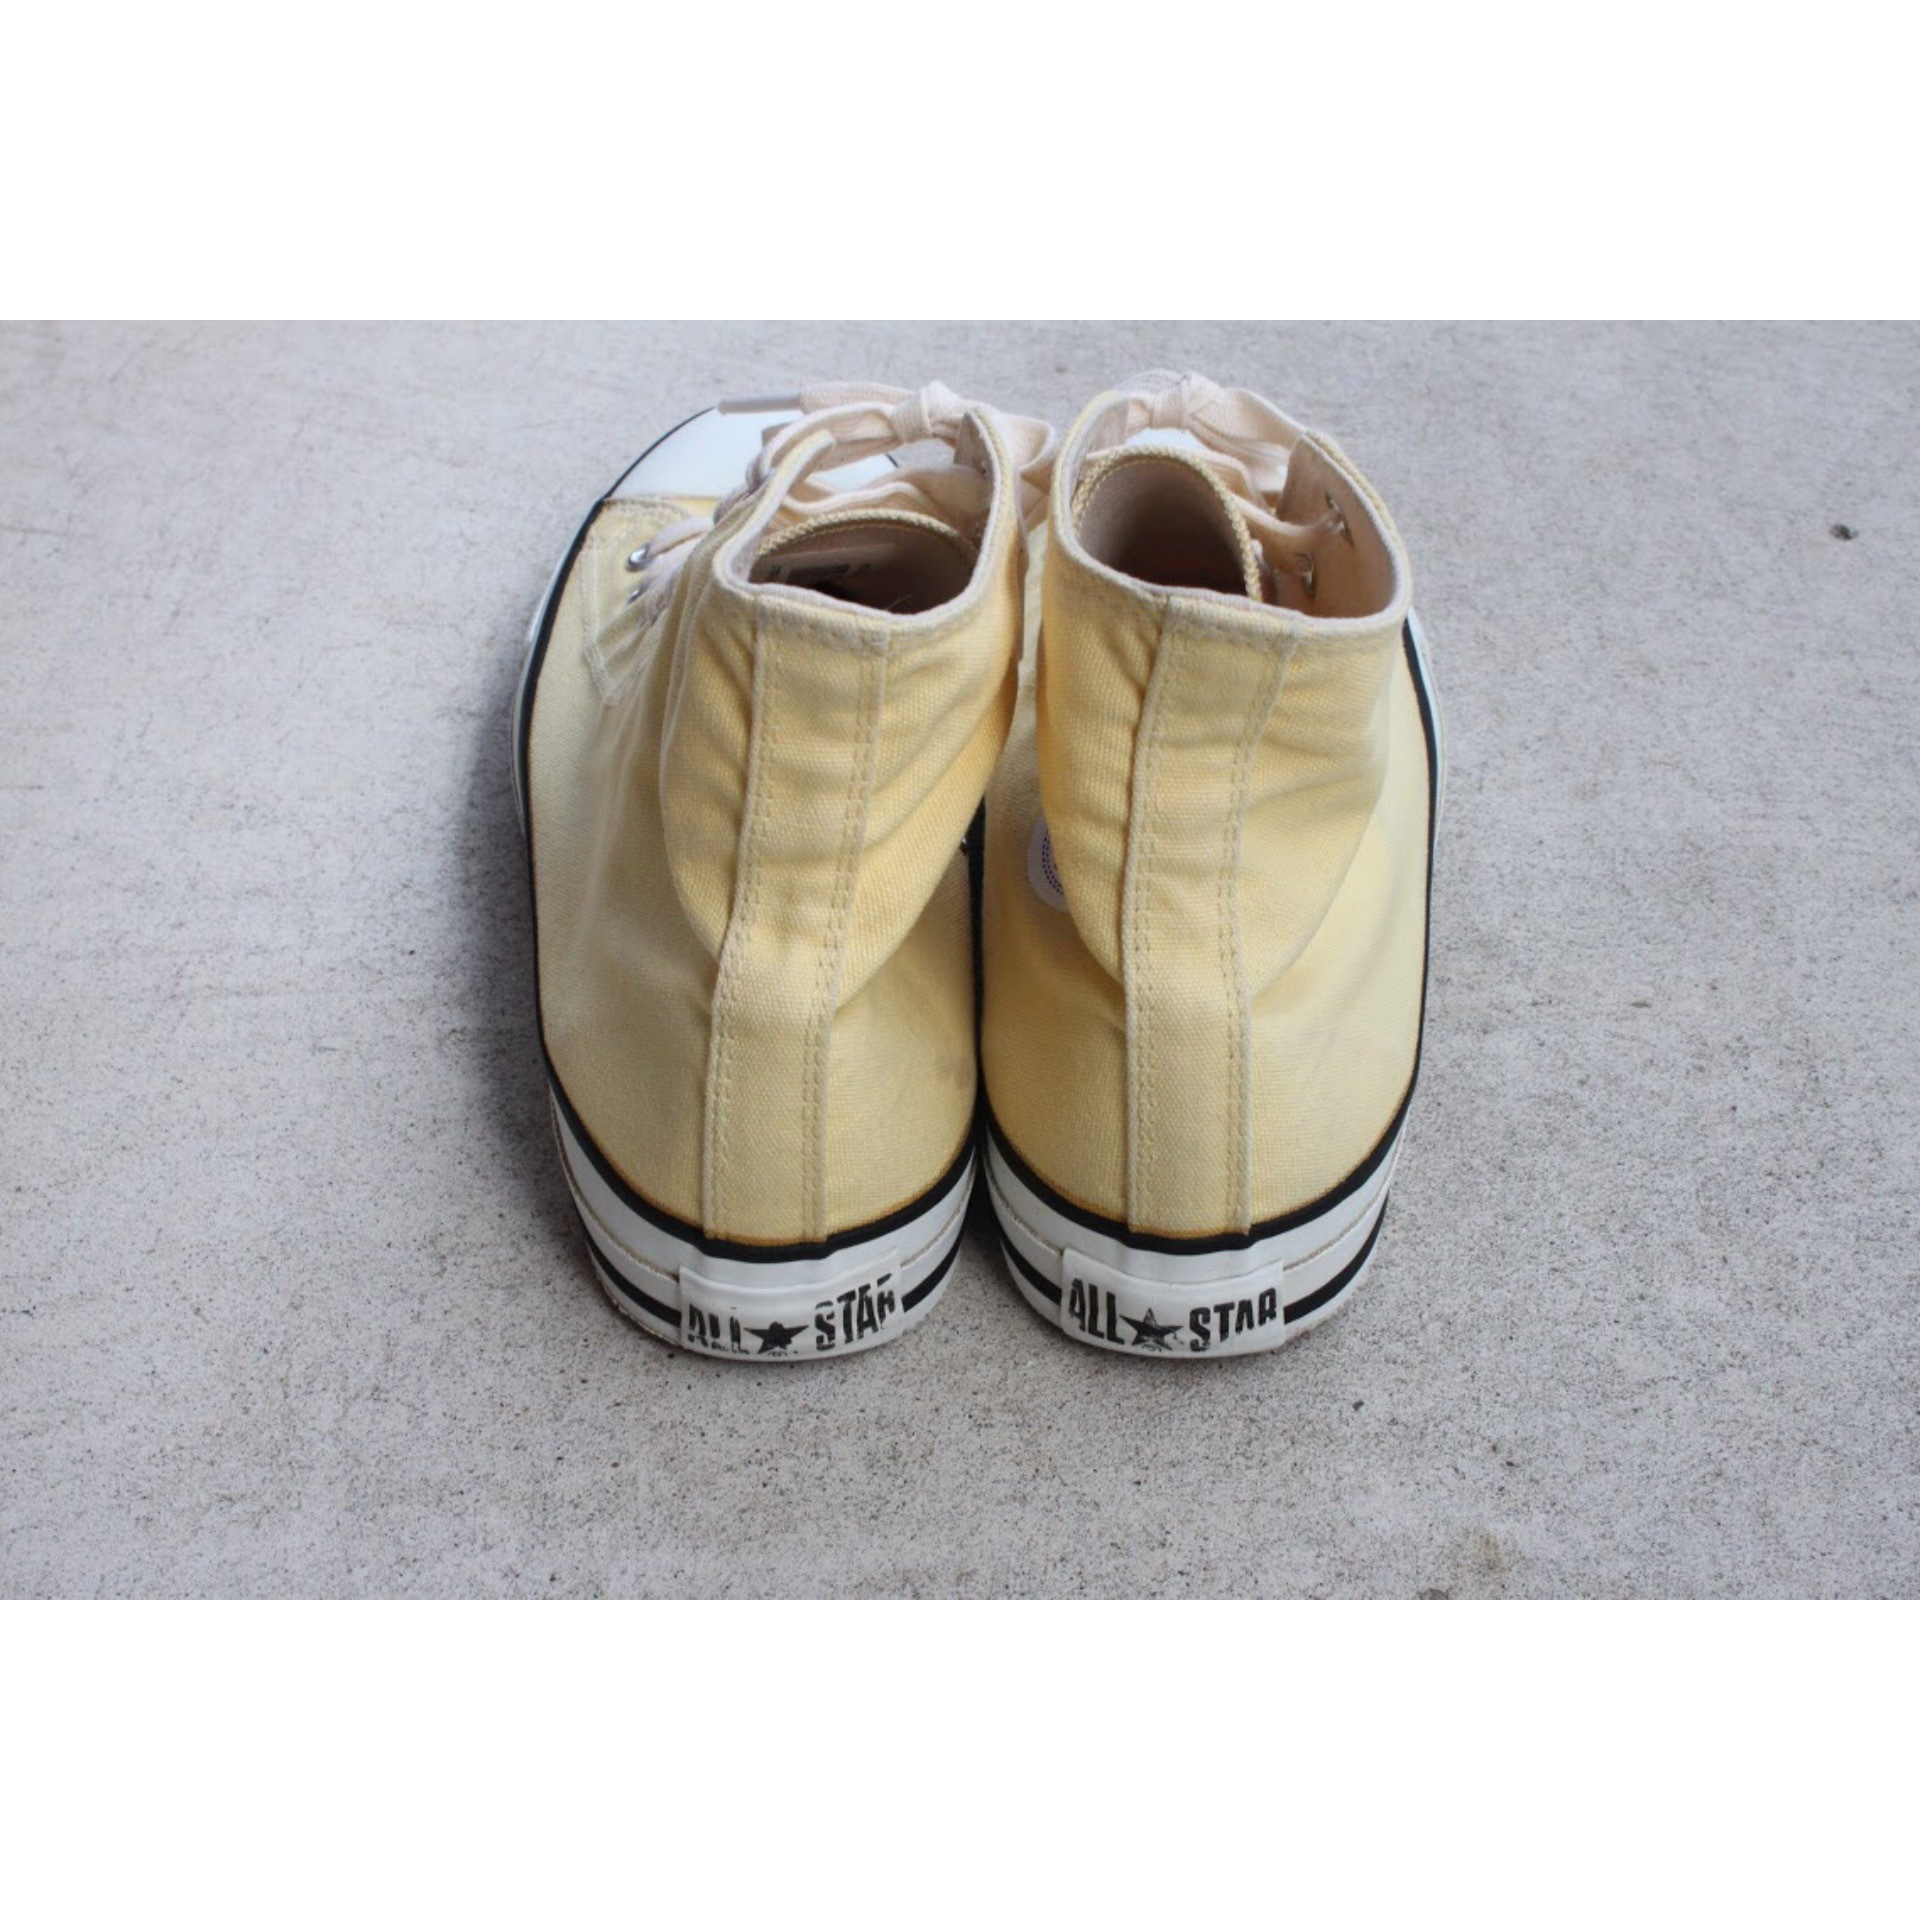 90s Converse Made in U.S.A. Size 9